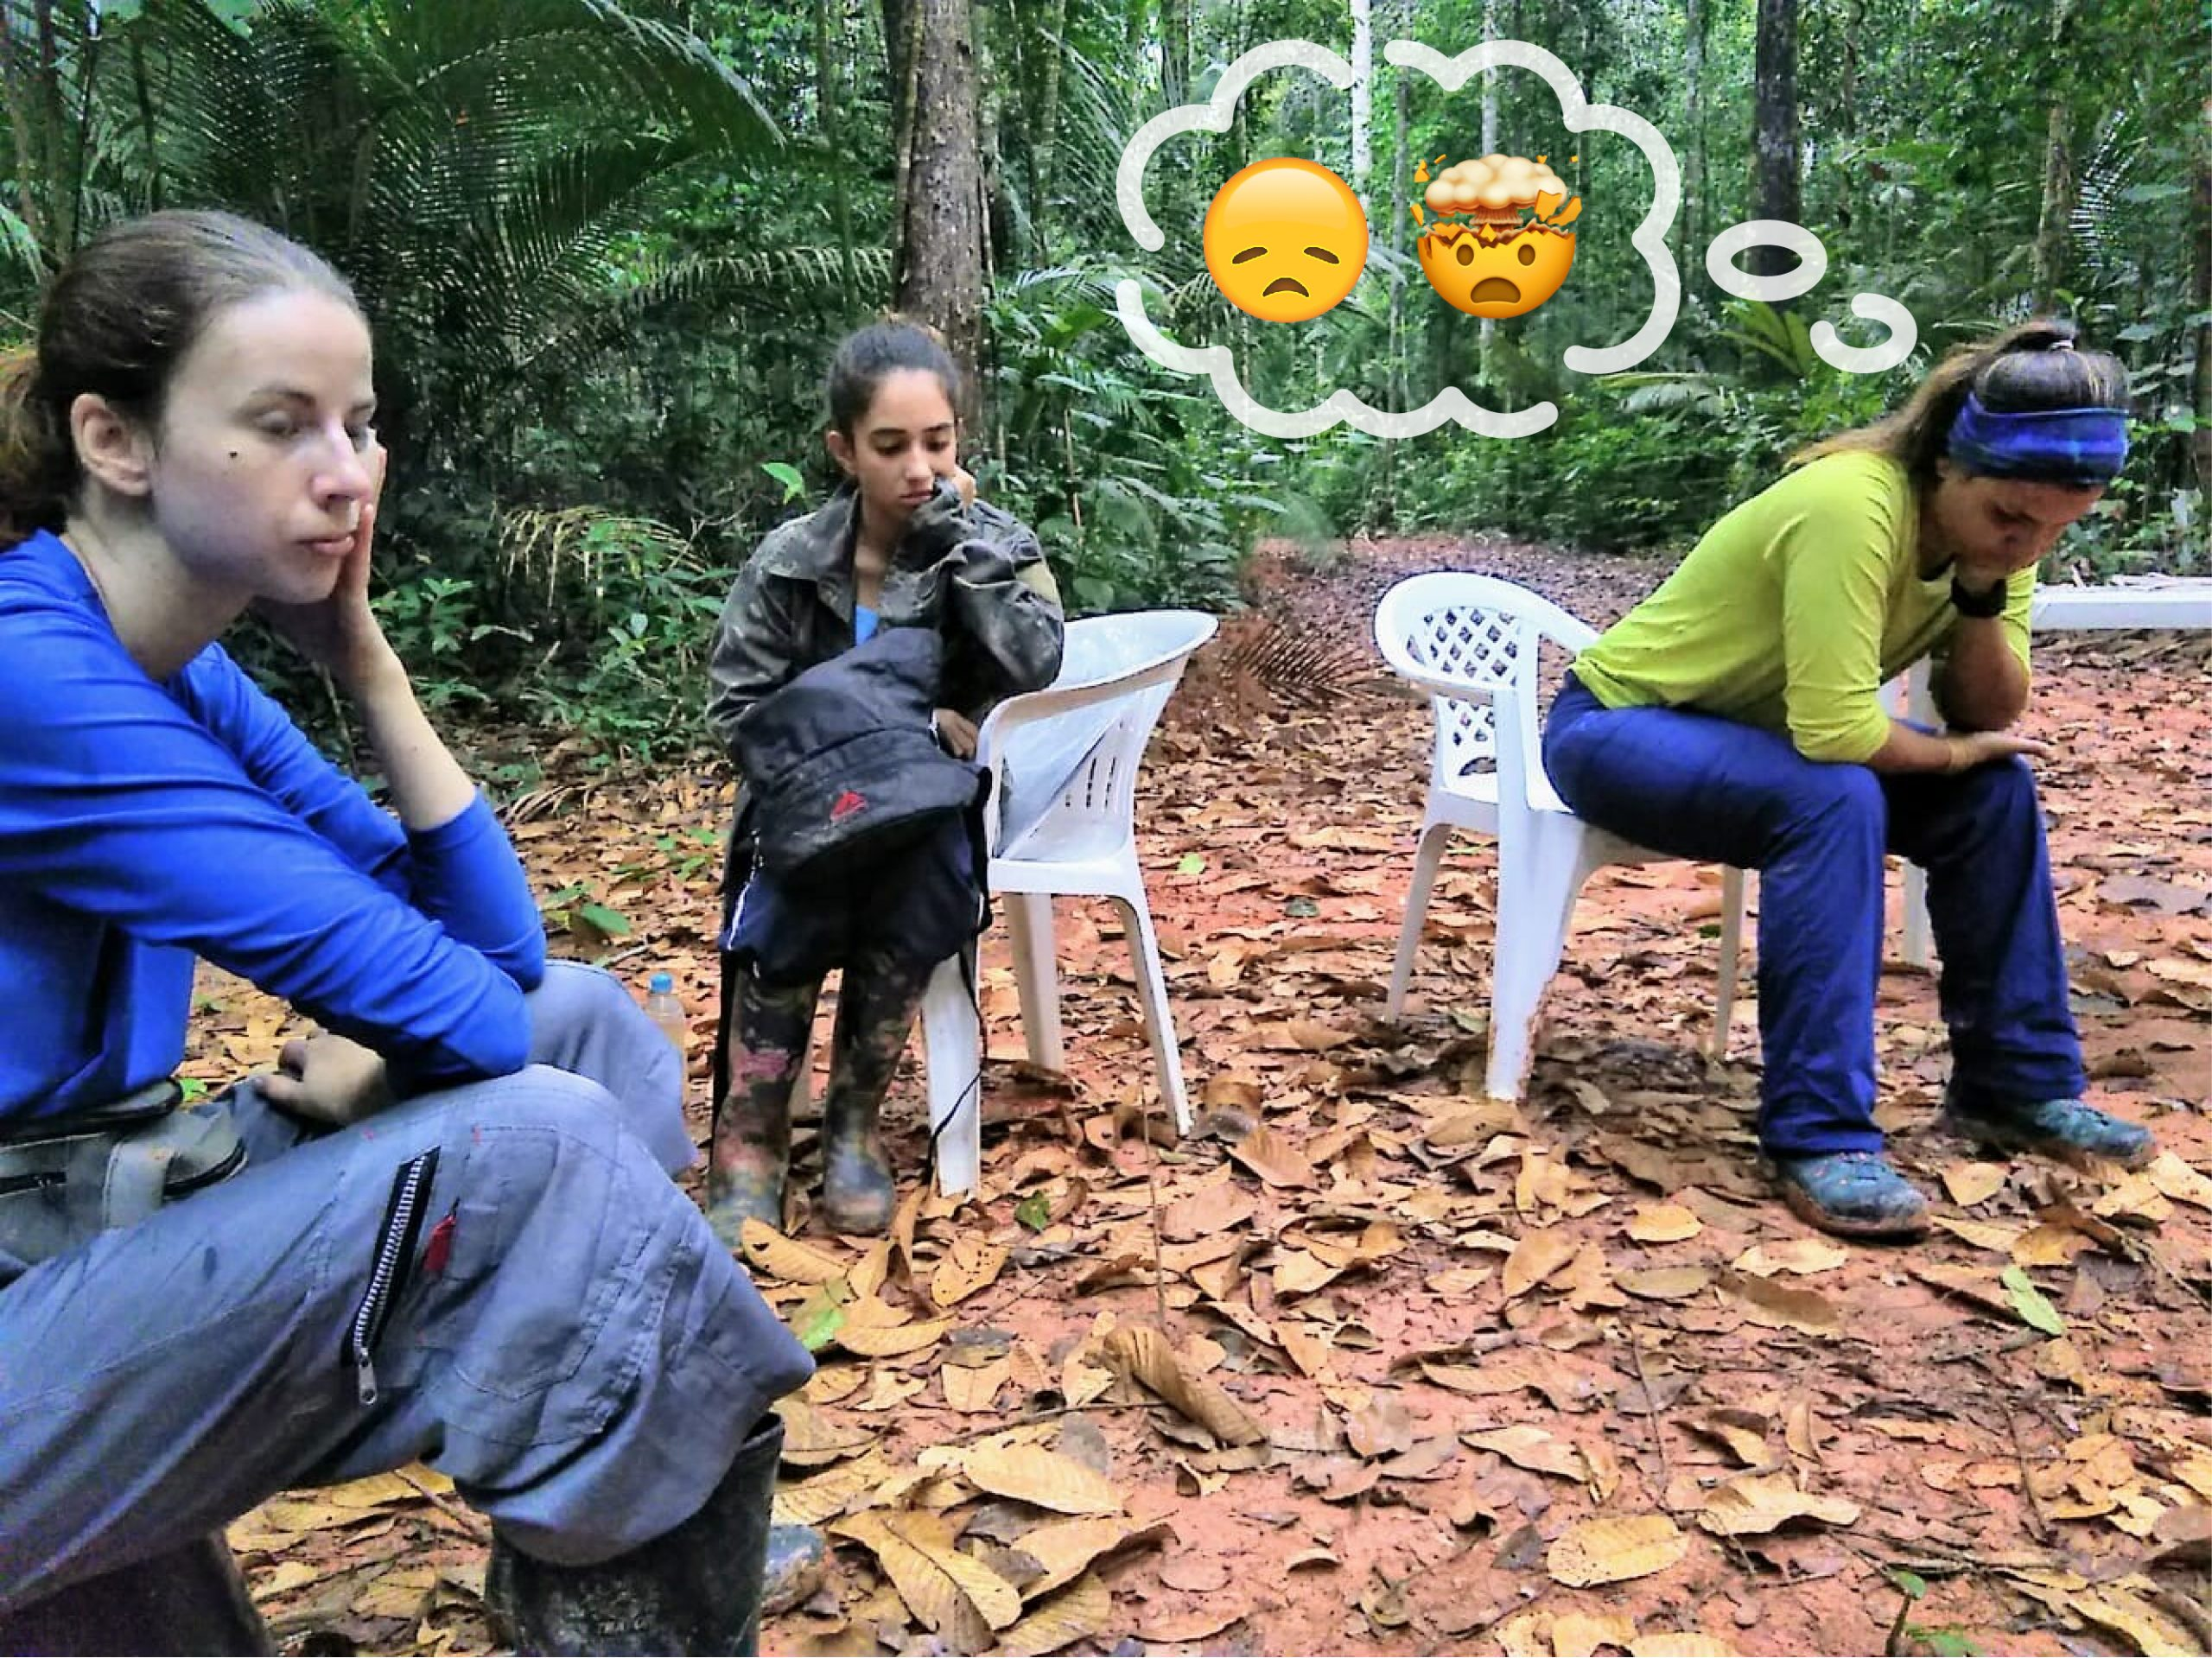 Eliane and two of her students sit in the forest, looking sad and frustrated, ponder how to fix the broken instrument.